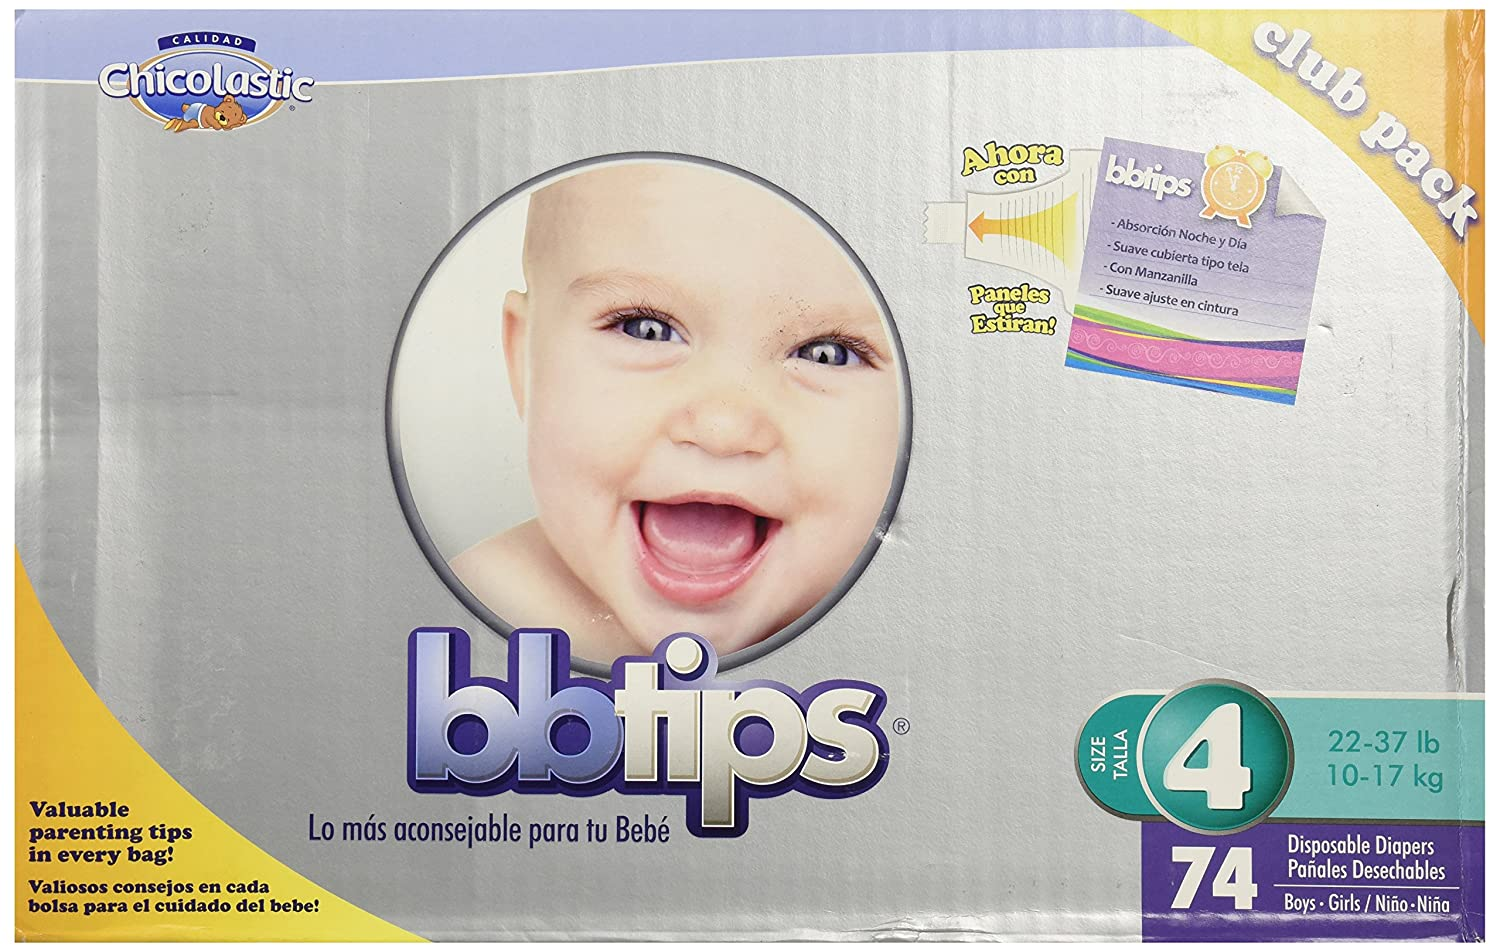 Amazon.com: Chicolastic Bbtips Infant Disposable Ultra Diapers, Large, Size 4, 74 Count: Health & Personal Care